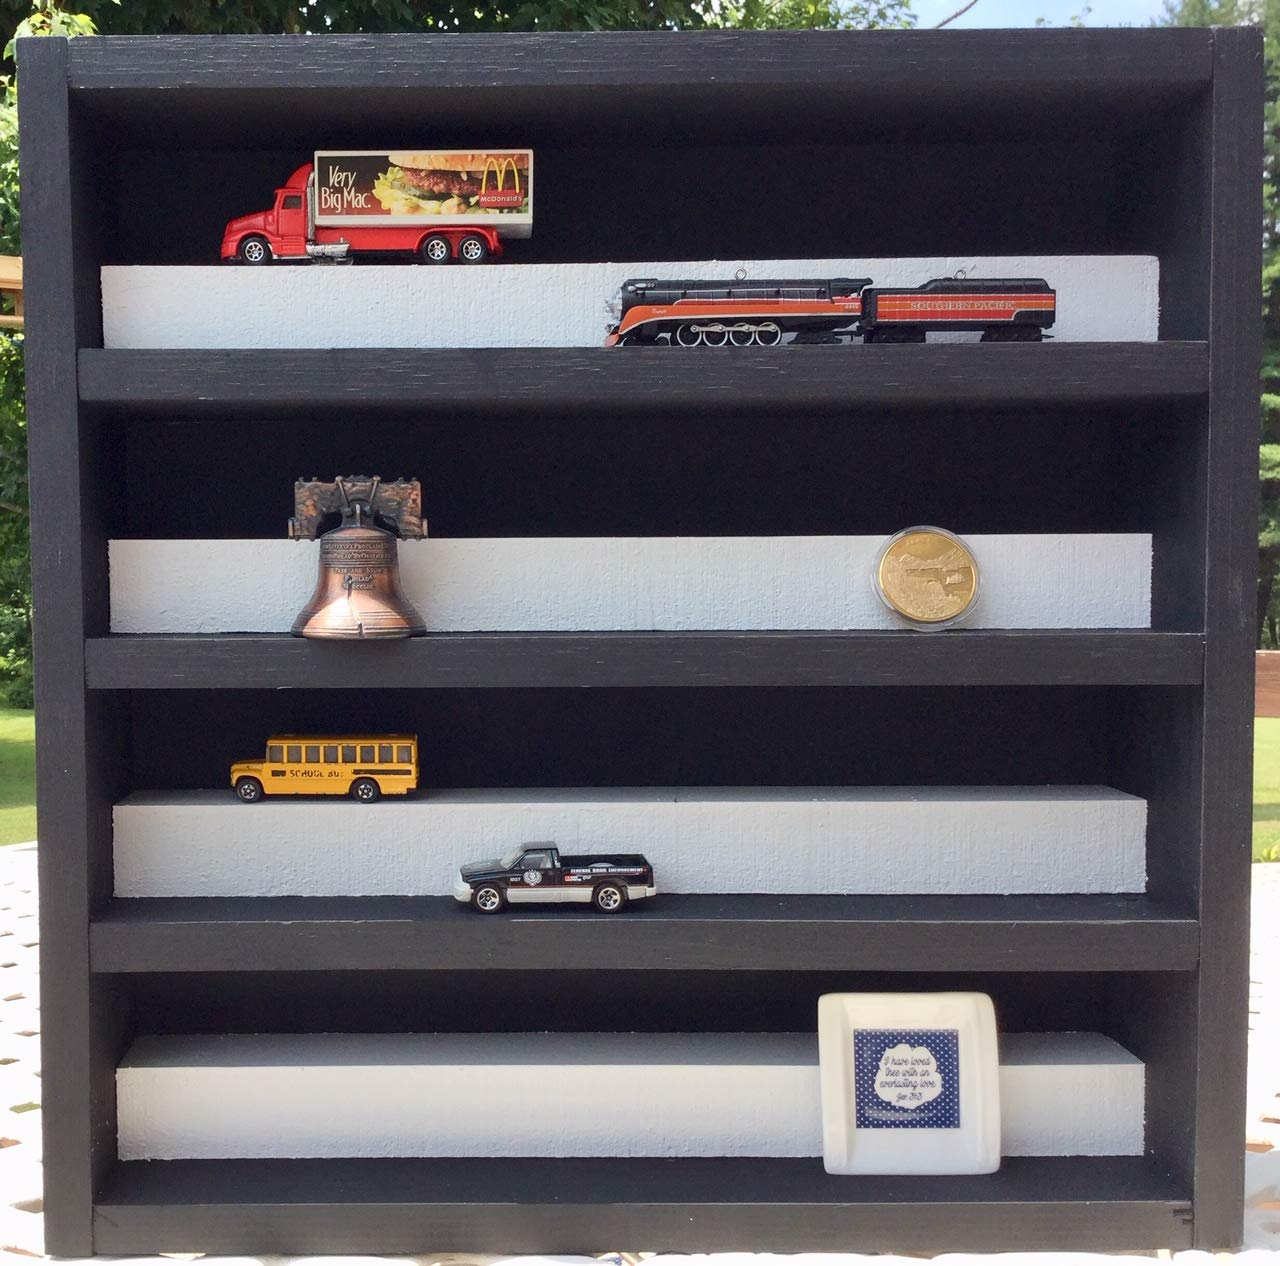 Display Case for Matchbox or HOTWHEEL Cars or DIECAST Models